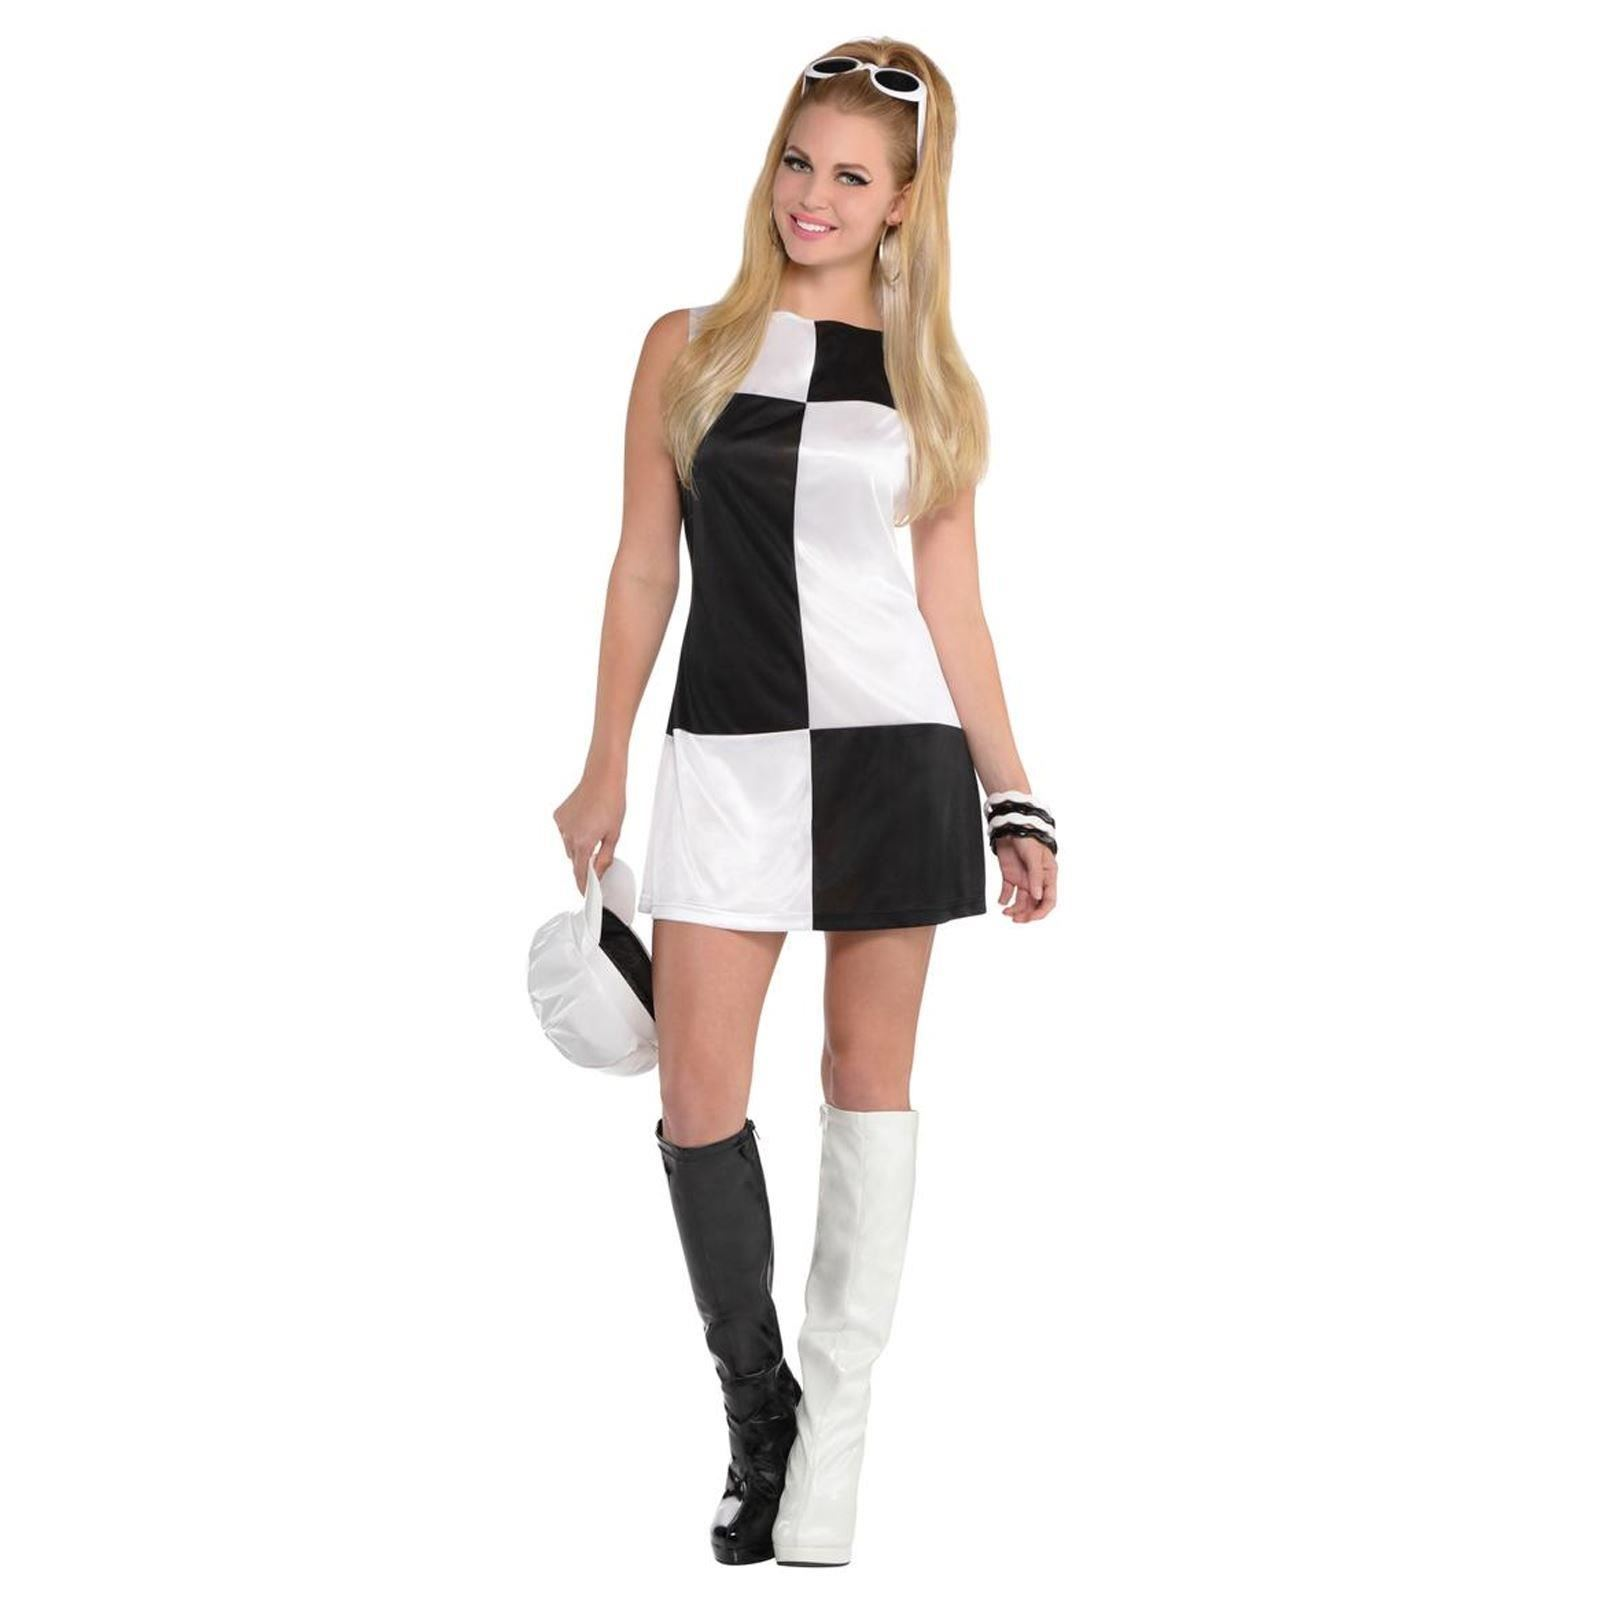 Costume for black and white dress